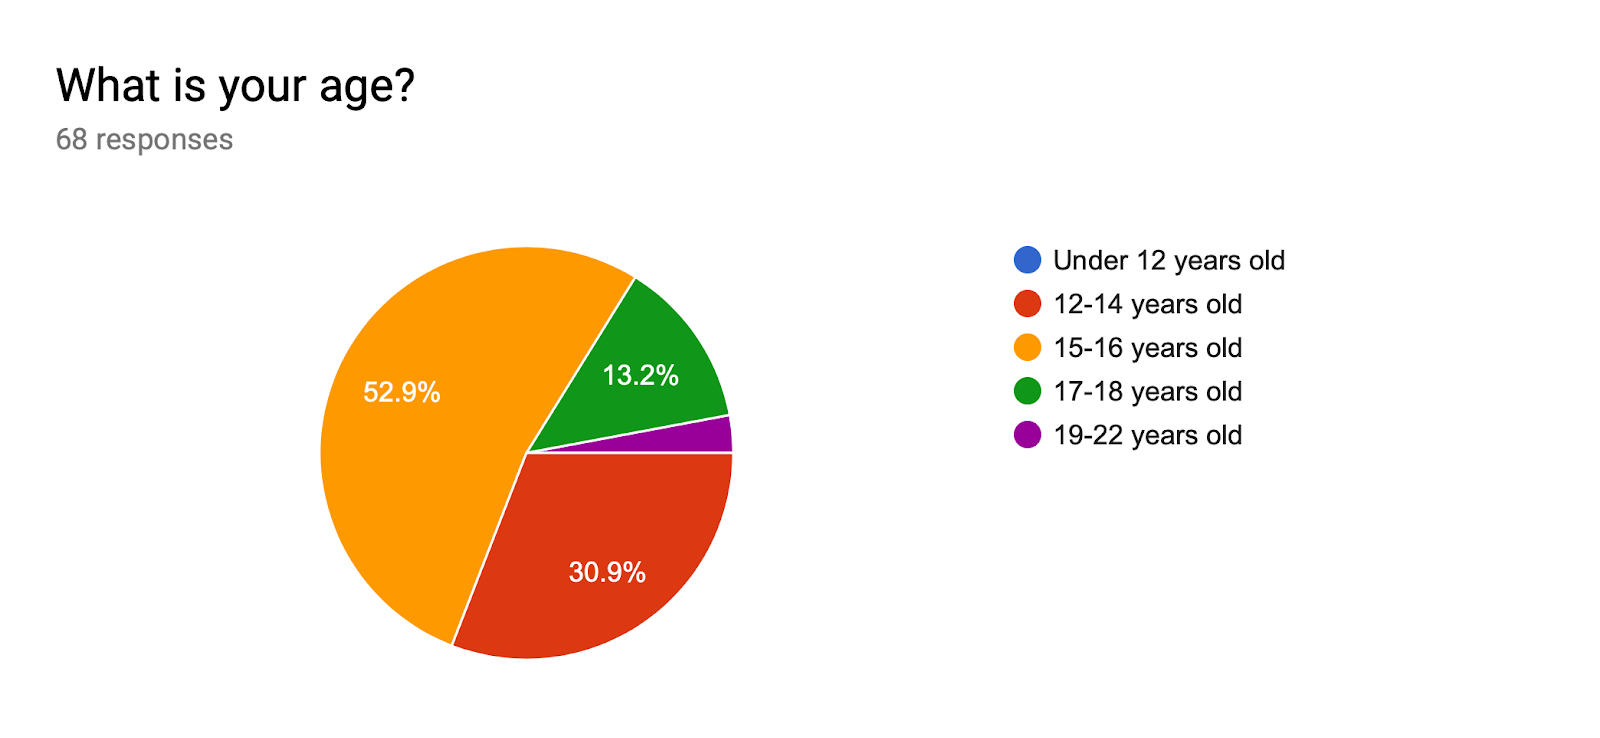 Forms response chart. Question title: What is your age?. Number of responses: 68 responses.